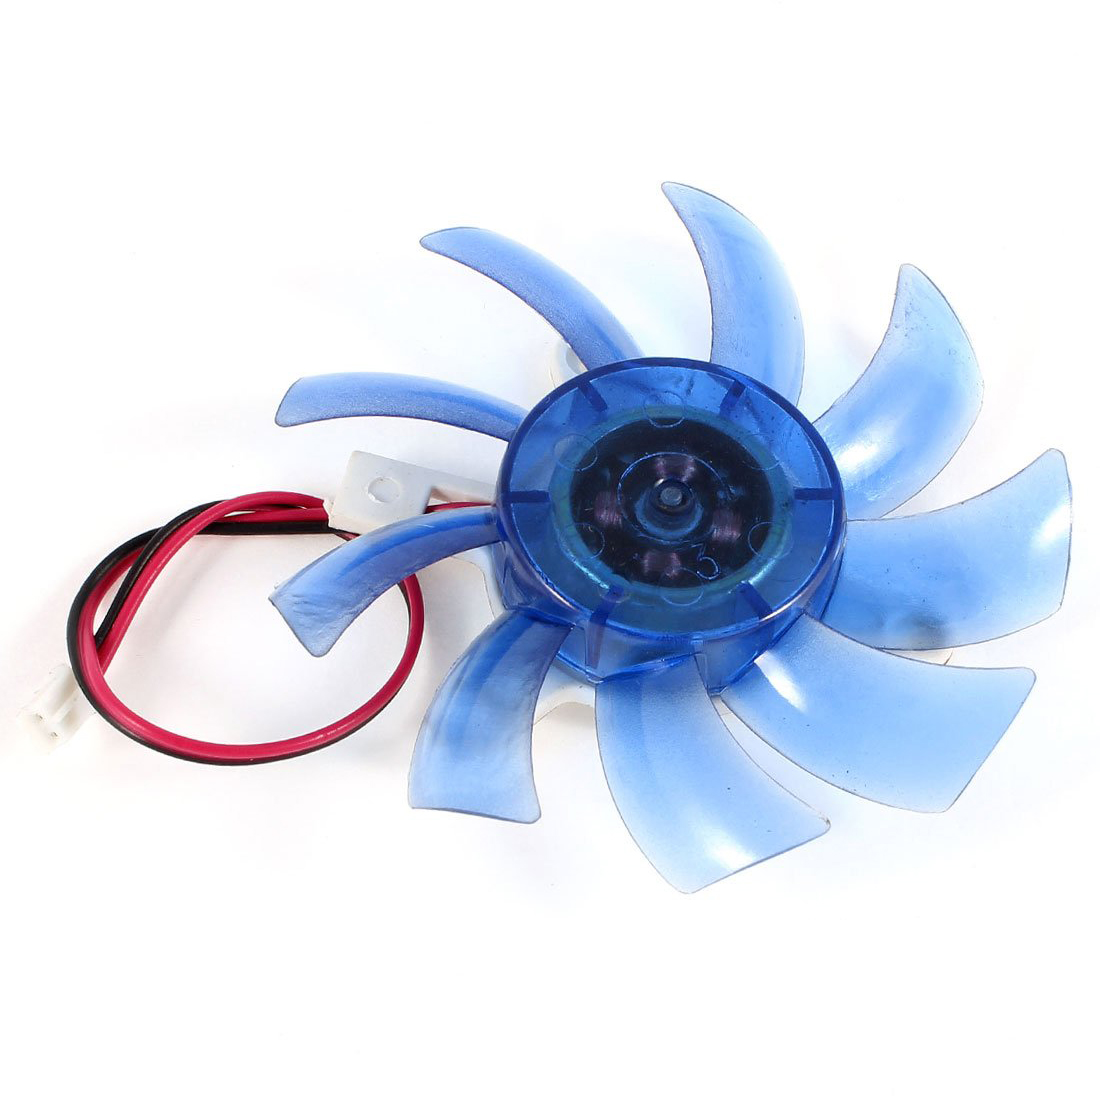 75mm 12VDC Blue Plastic VGA Video Card Cooling Fan Cooler for Computer computer radiator cooler of vga graphics card with cooling fan heatsink for evga gt440 430 gt620 gt630 video card cooling